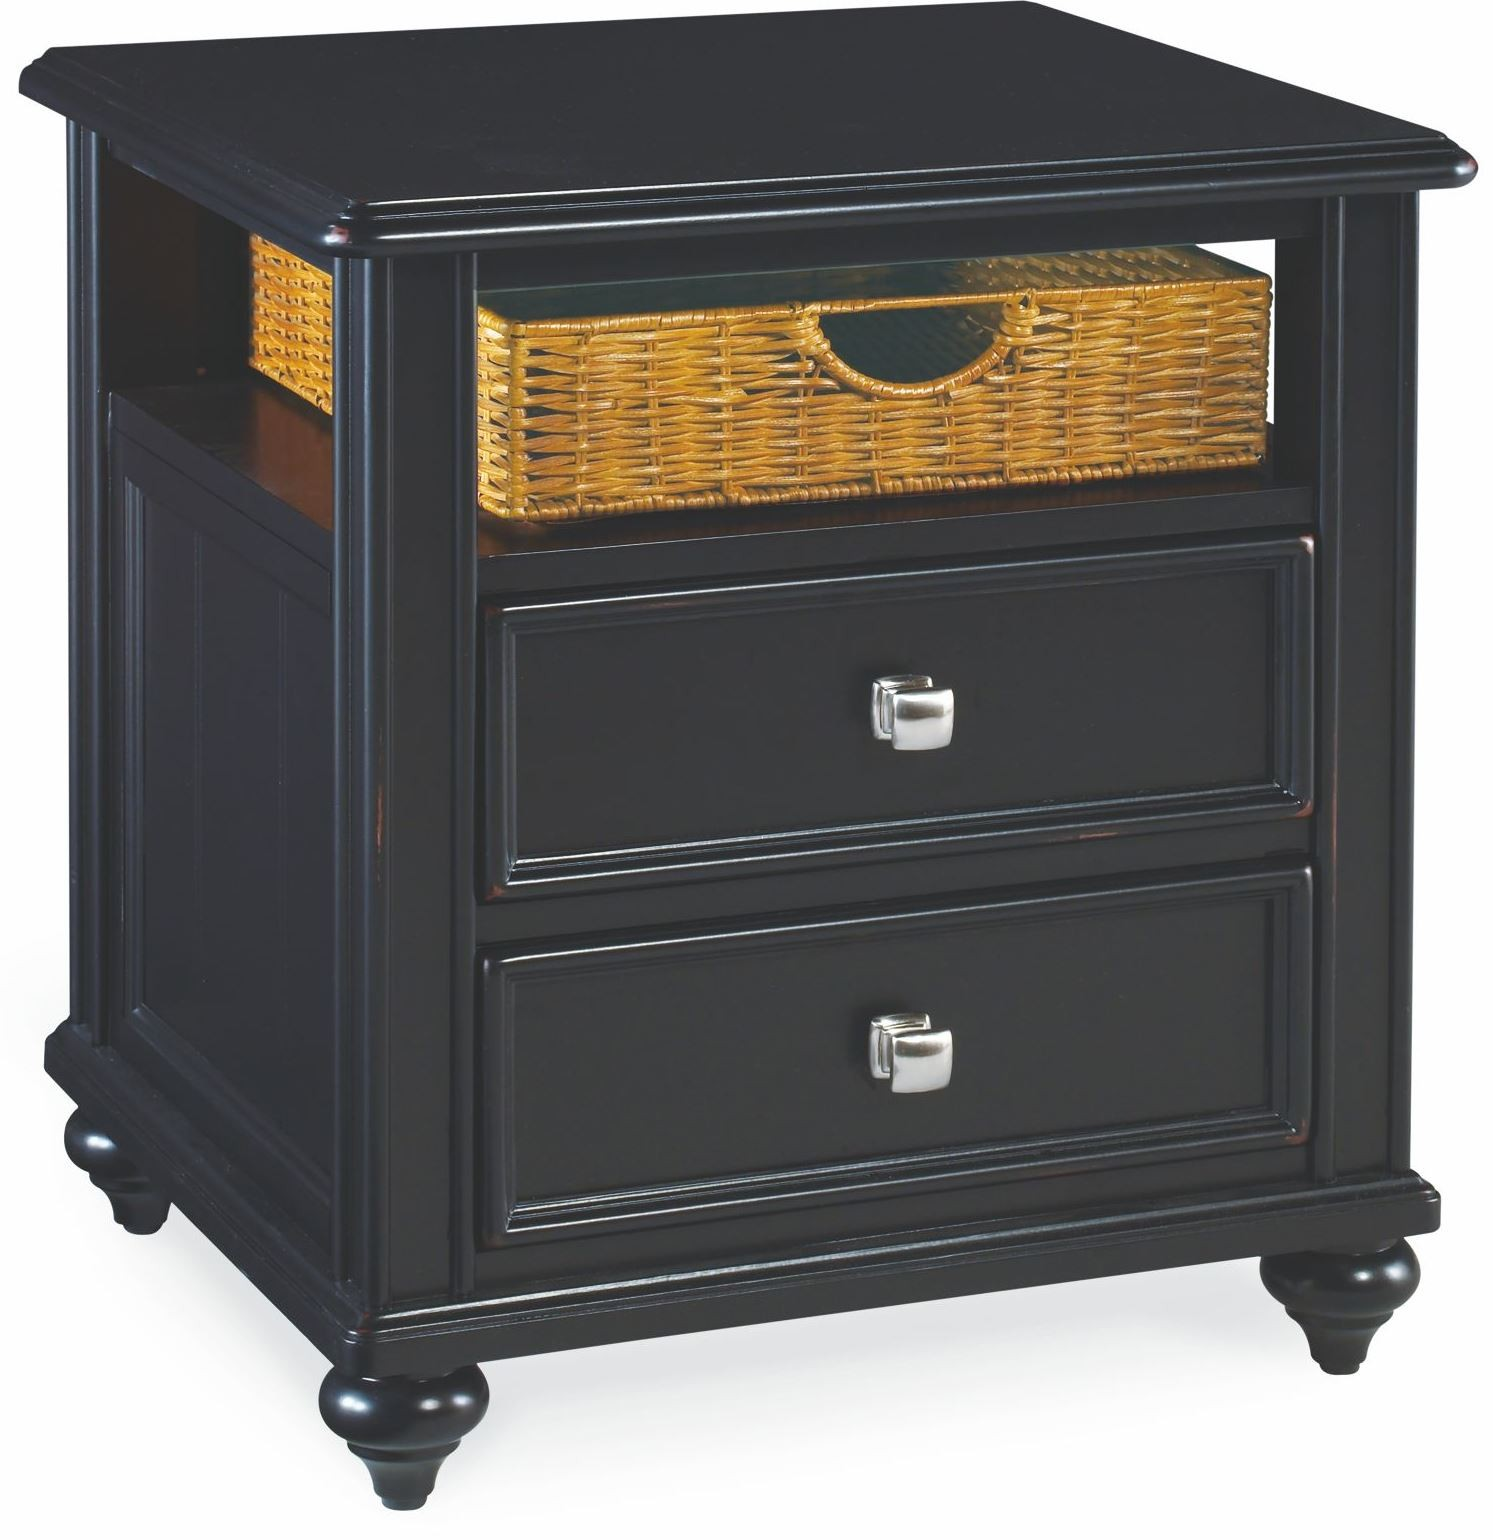 Black Side Table Camden Black Side Table From American Drew 919 915